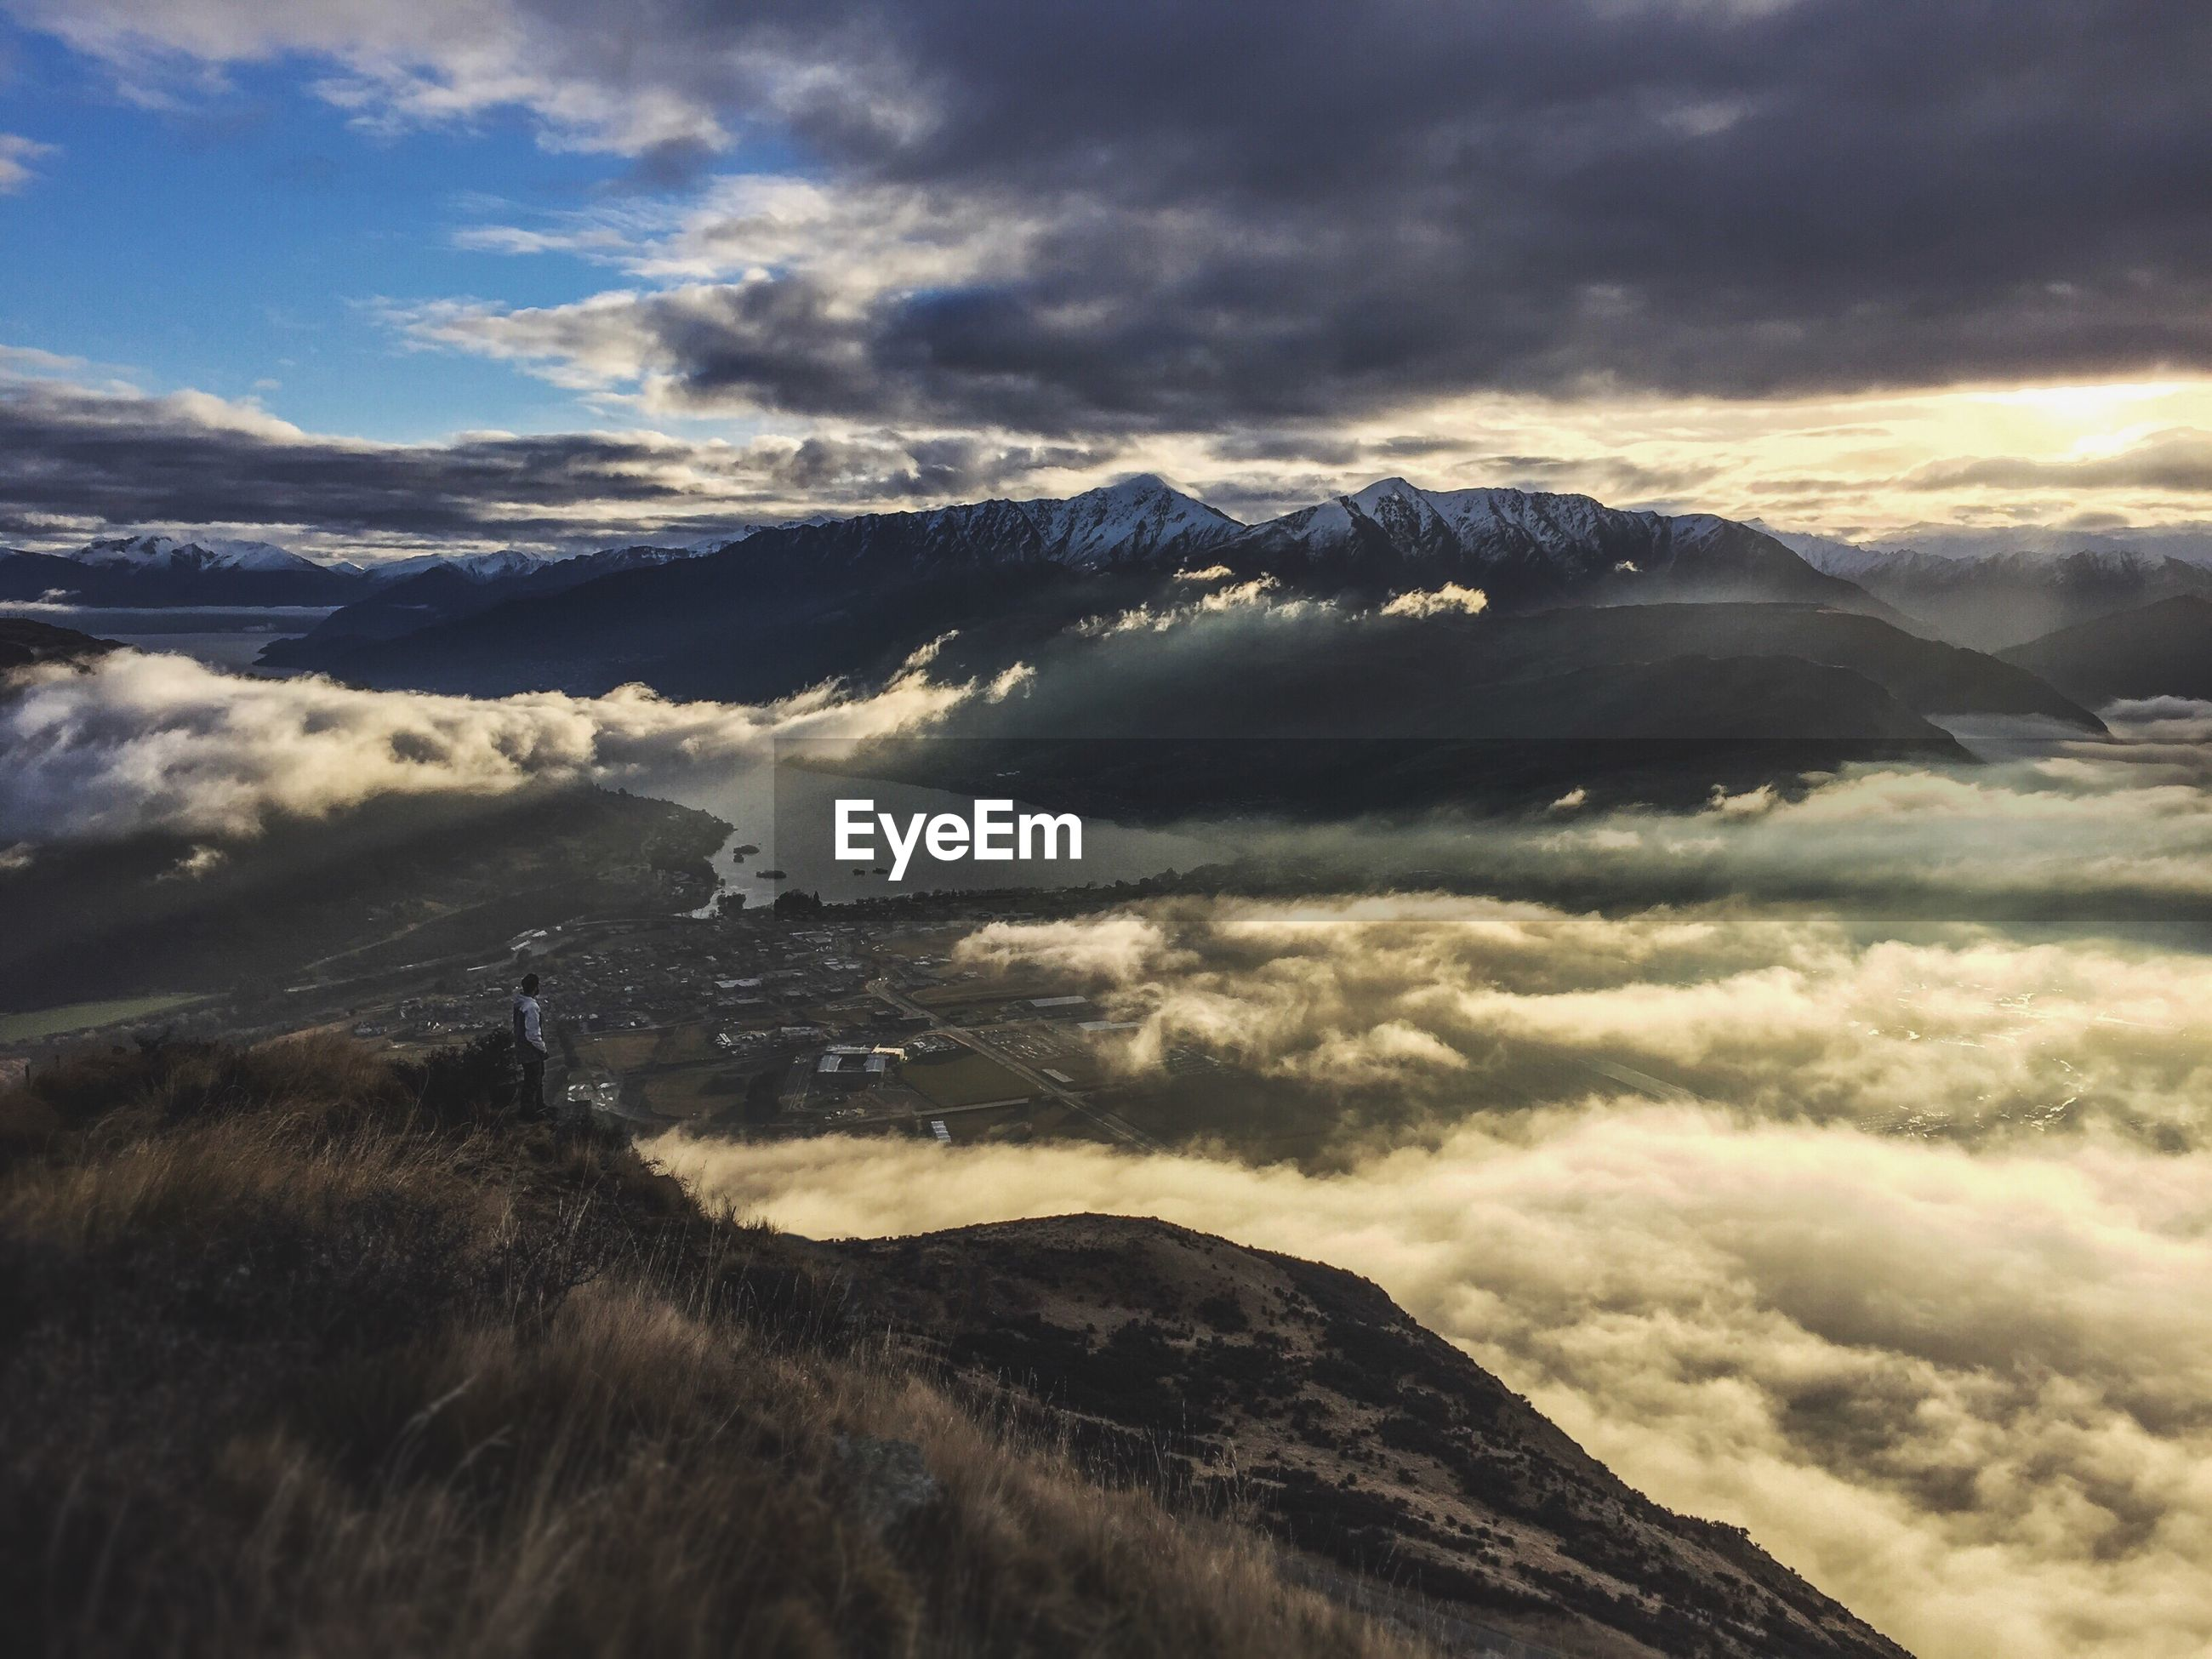 SCENIC VIEW OF CLOUDSCAPE OVER MOUNTAINS